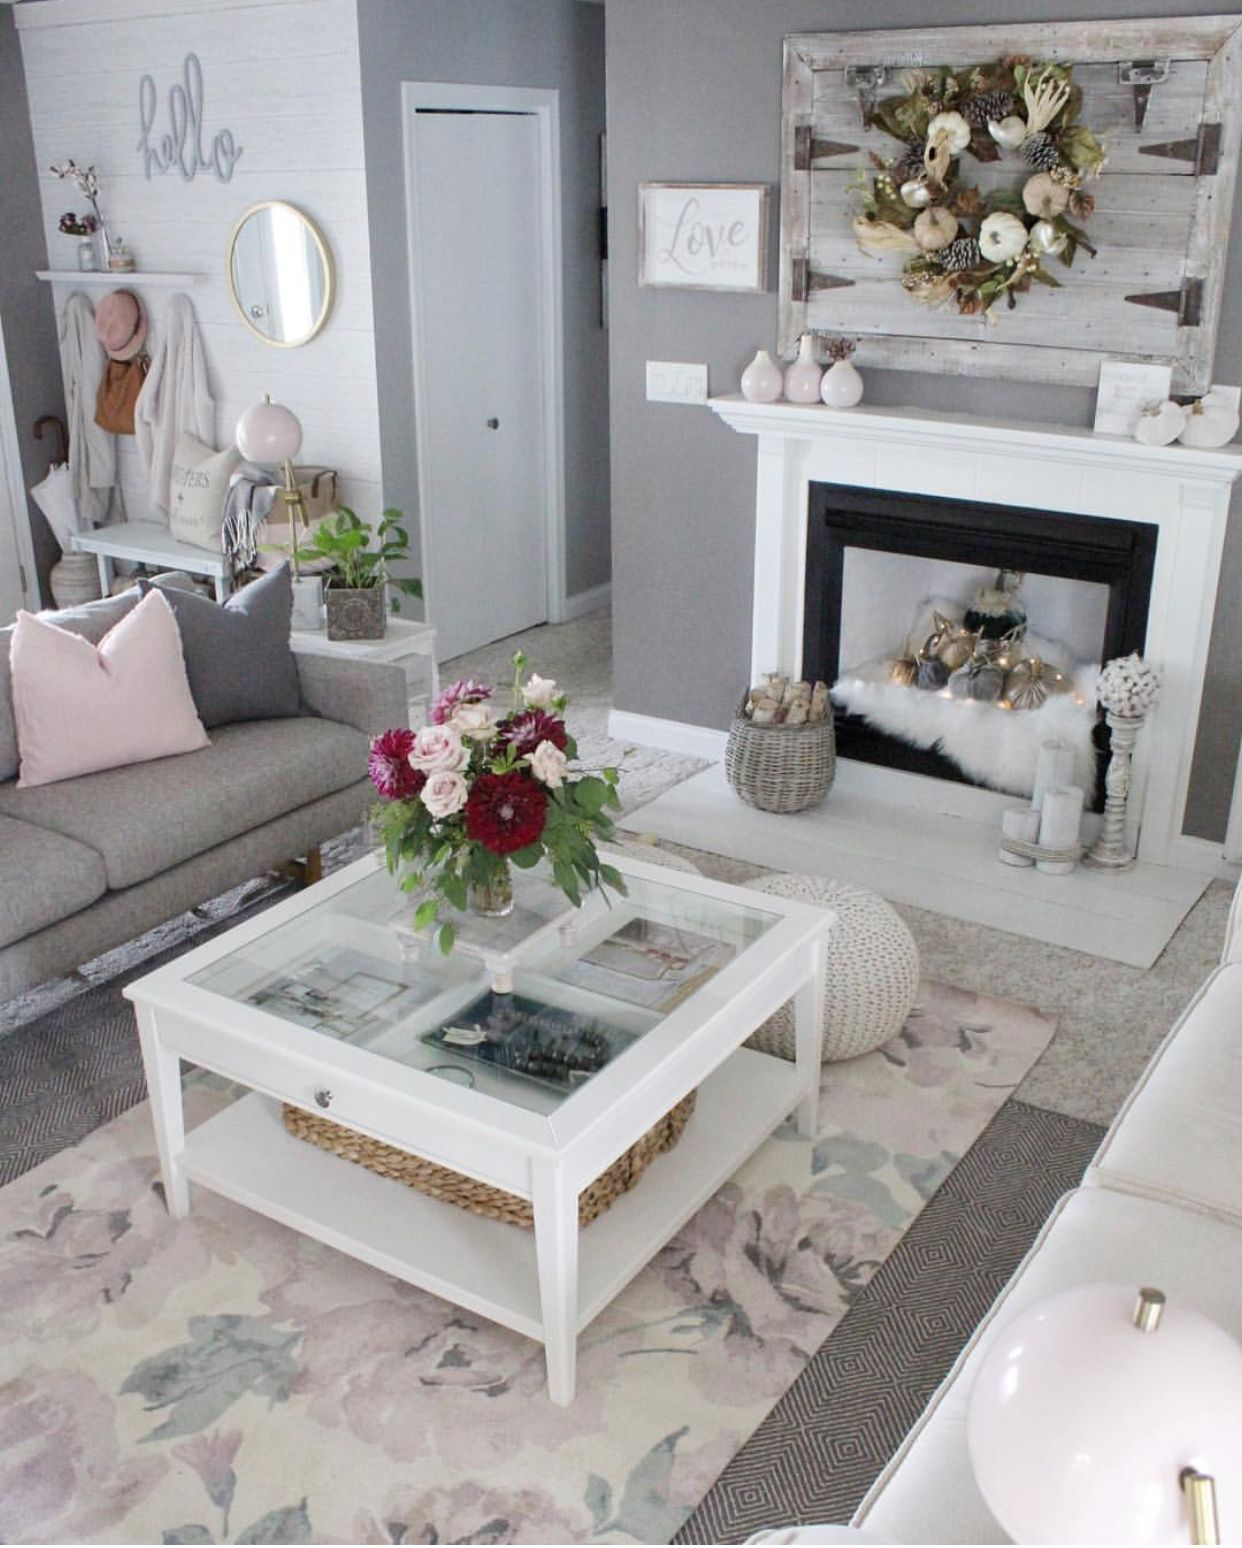 Pin by Lori Ireland on For the Home Rug sale, Farmhouse